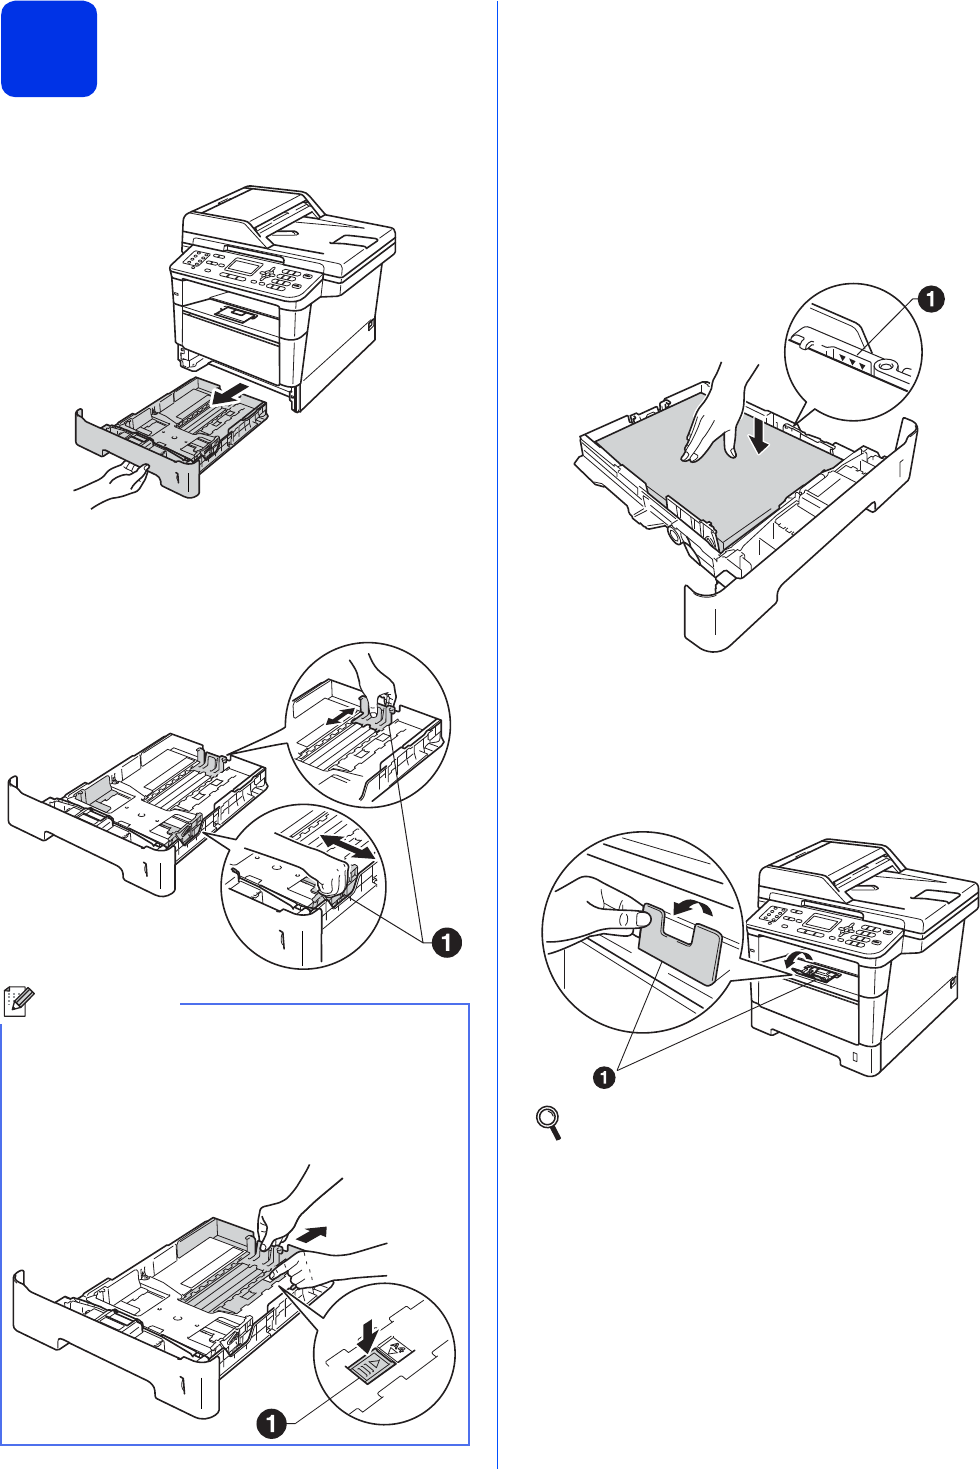 Brother Mfc 8810Dw Quick Start Guide